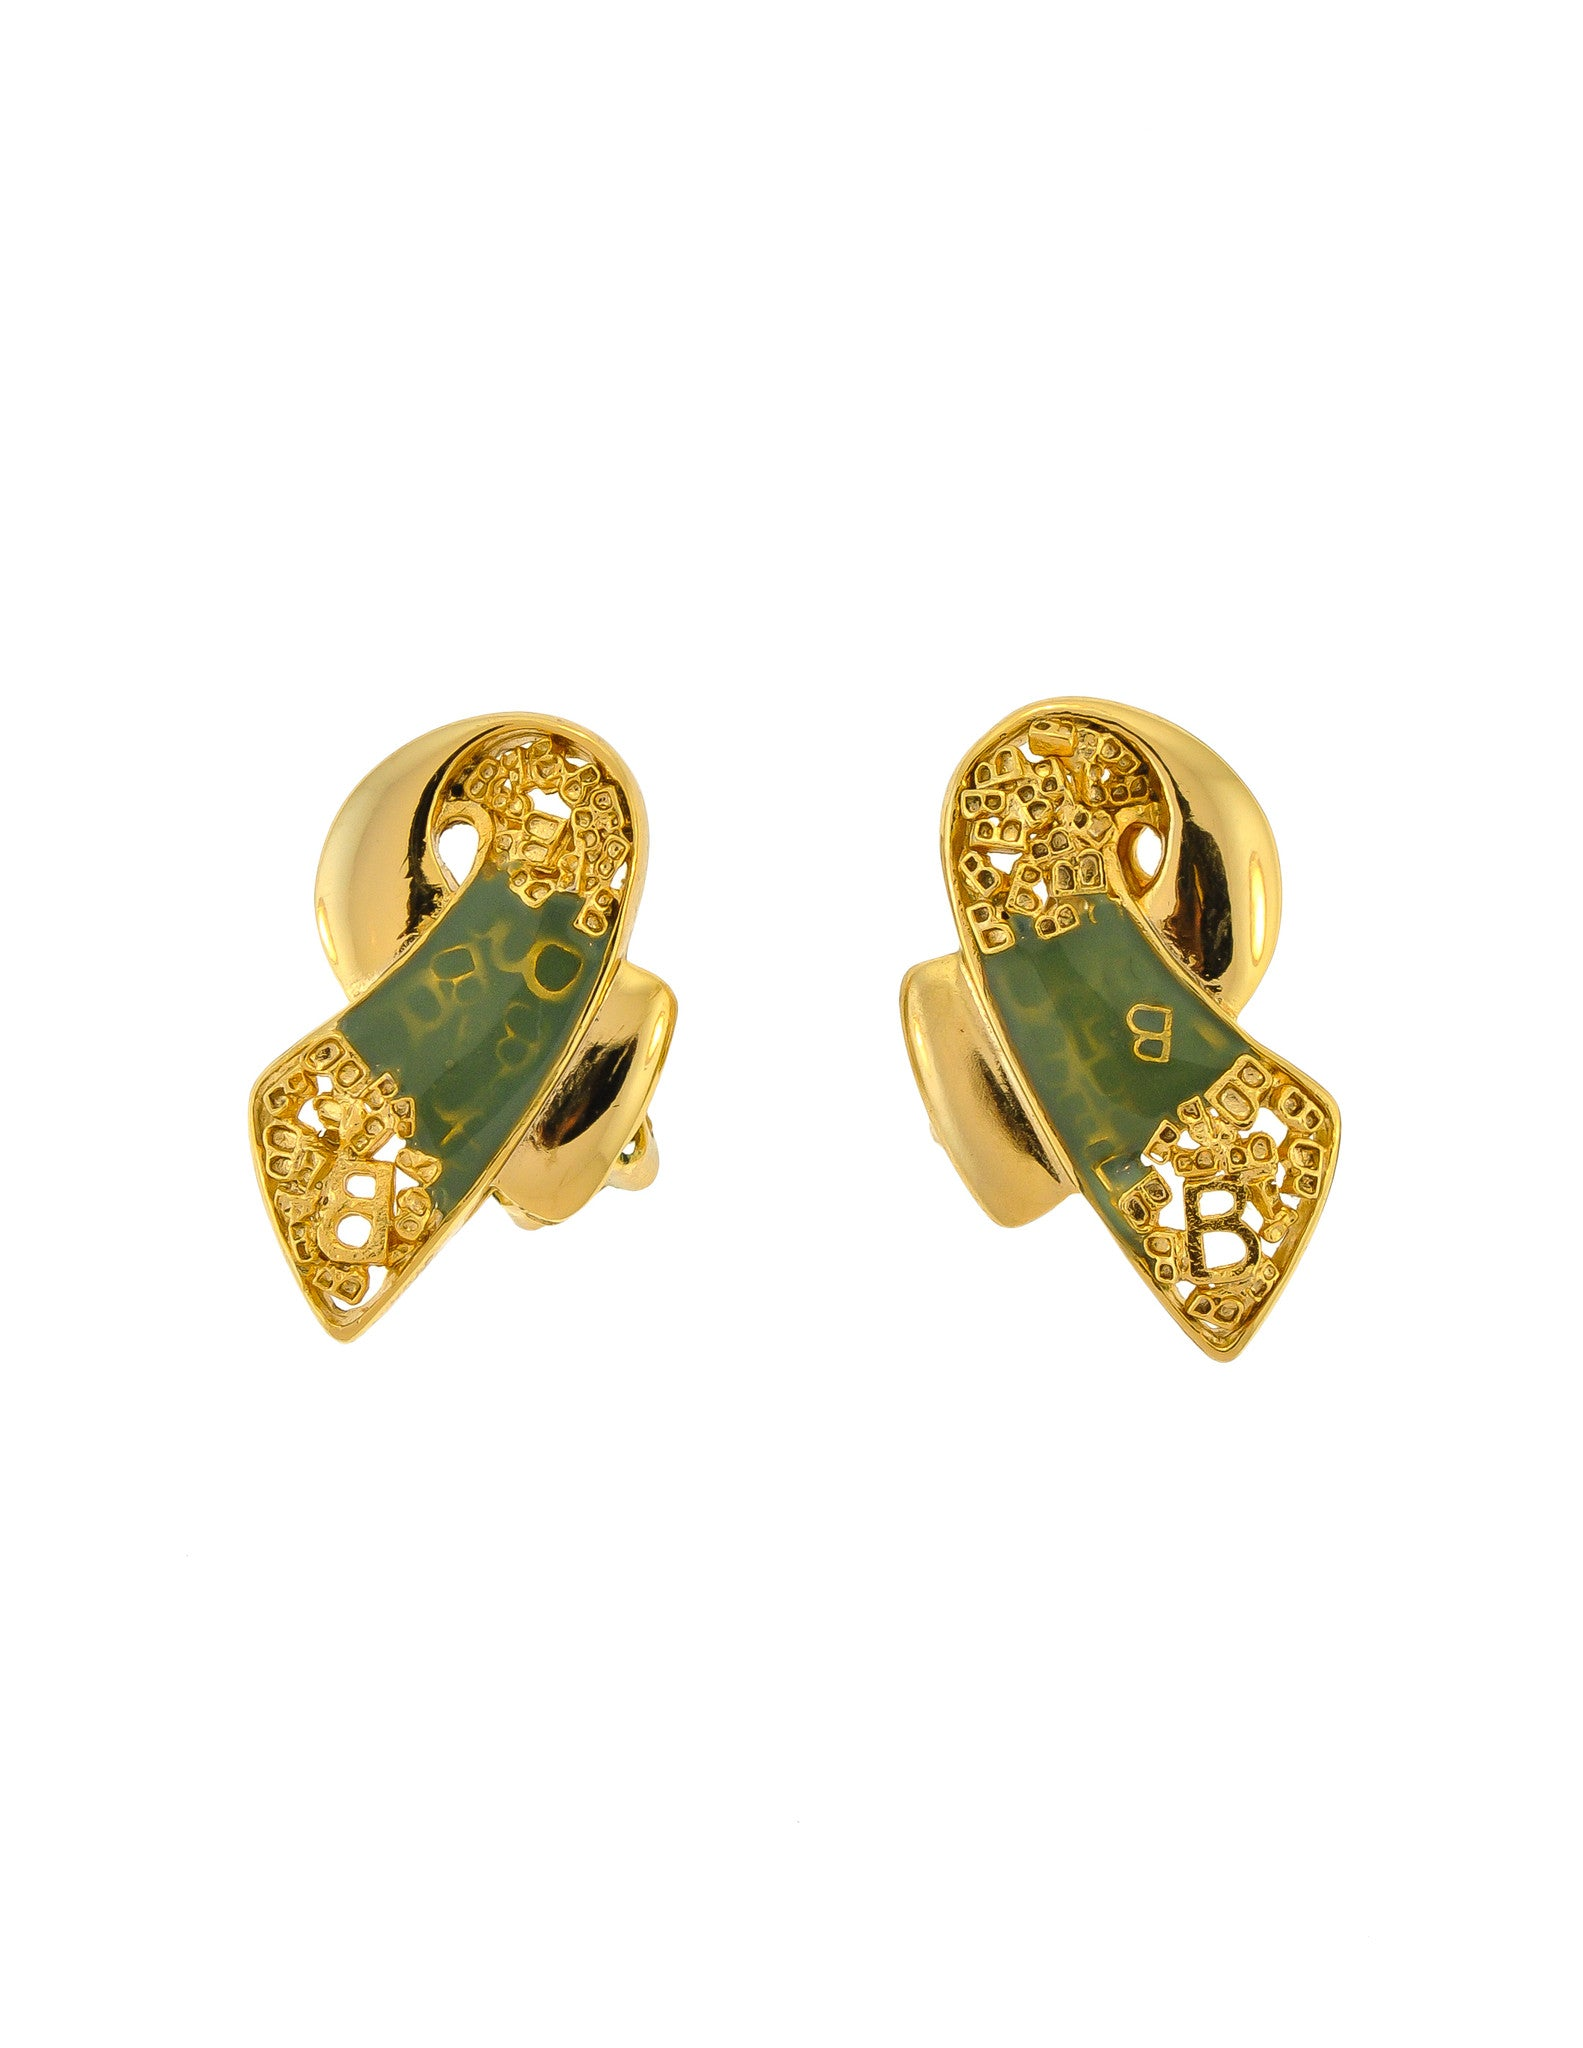 Balenciaga Vintage Seafoam Enamel Gold Twist Earrings - Amarcord Vintage Fashion  - 1